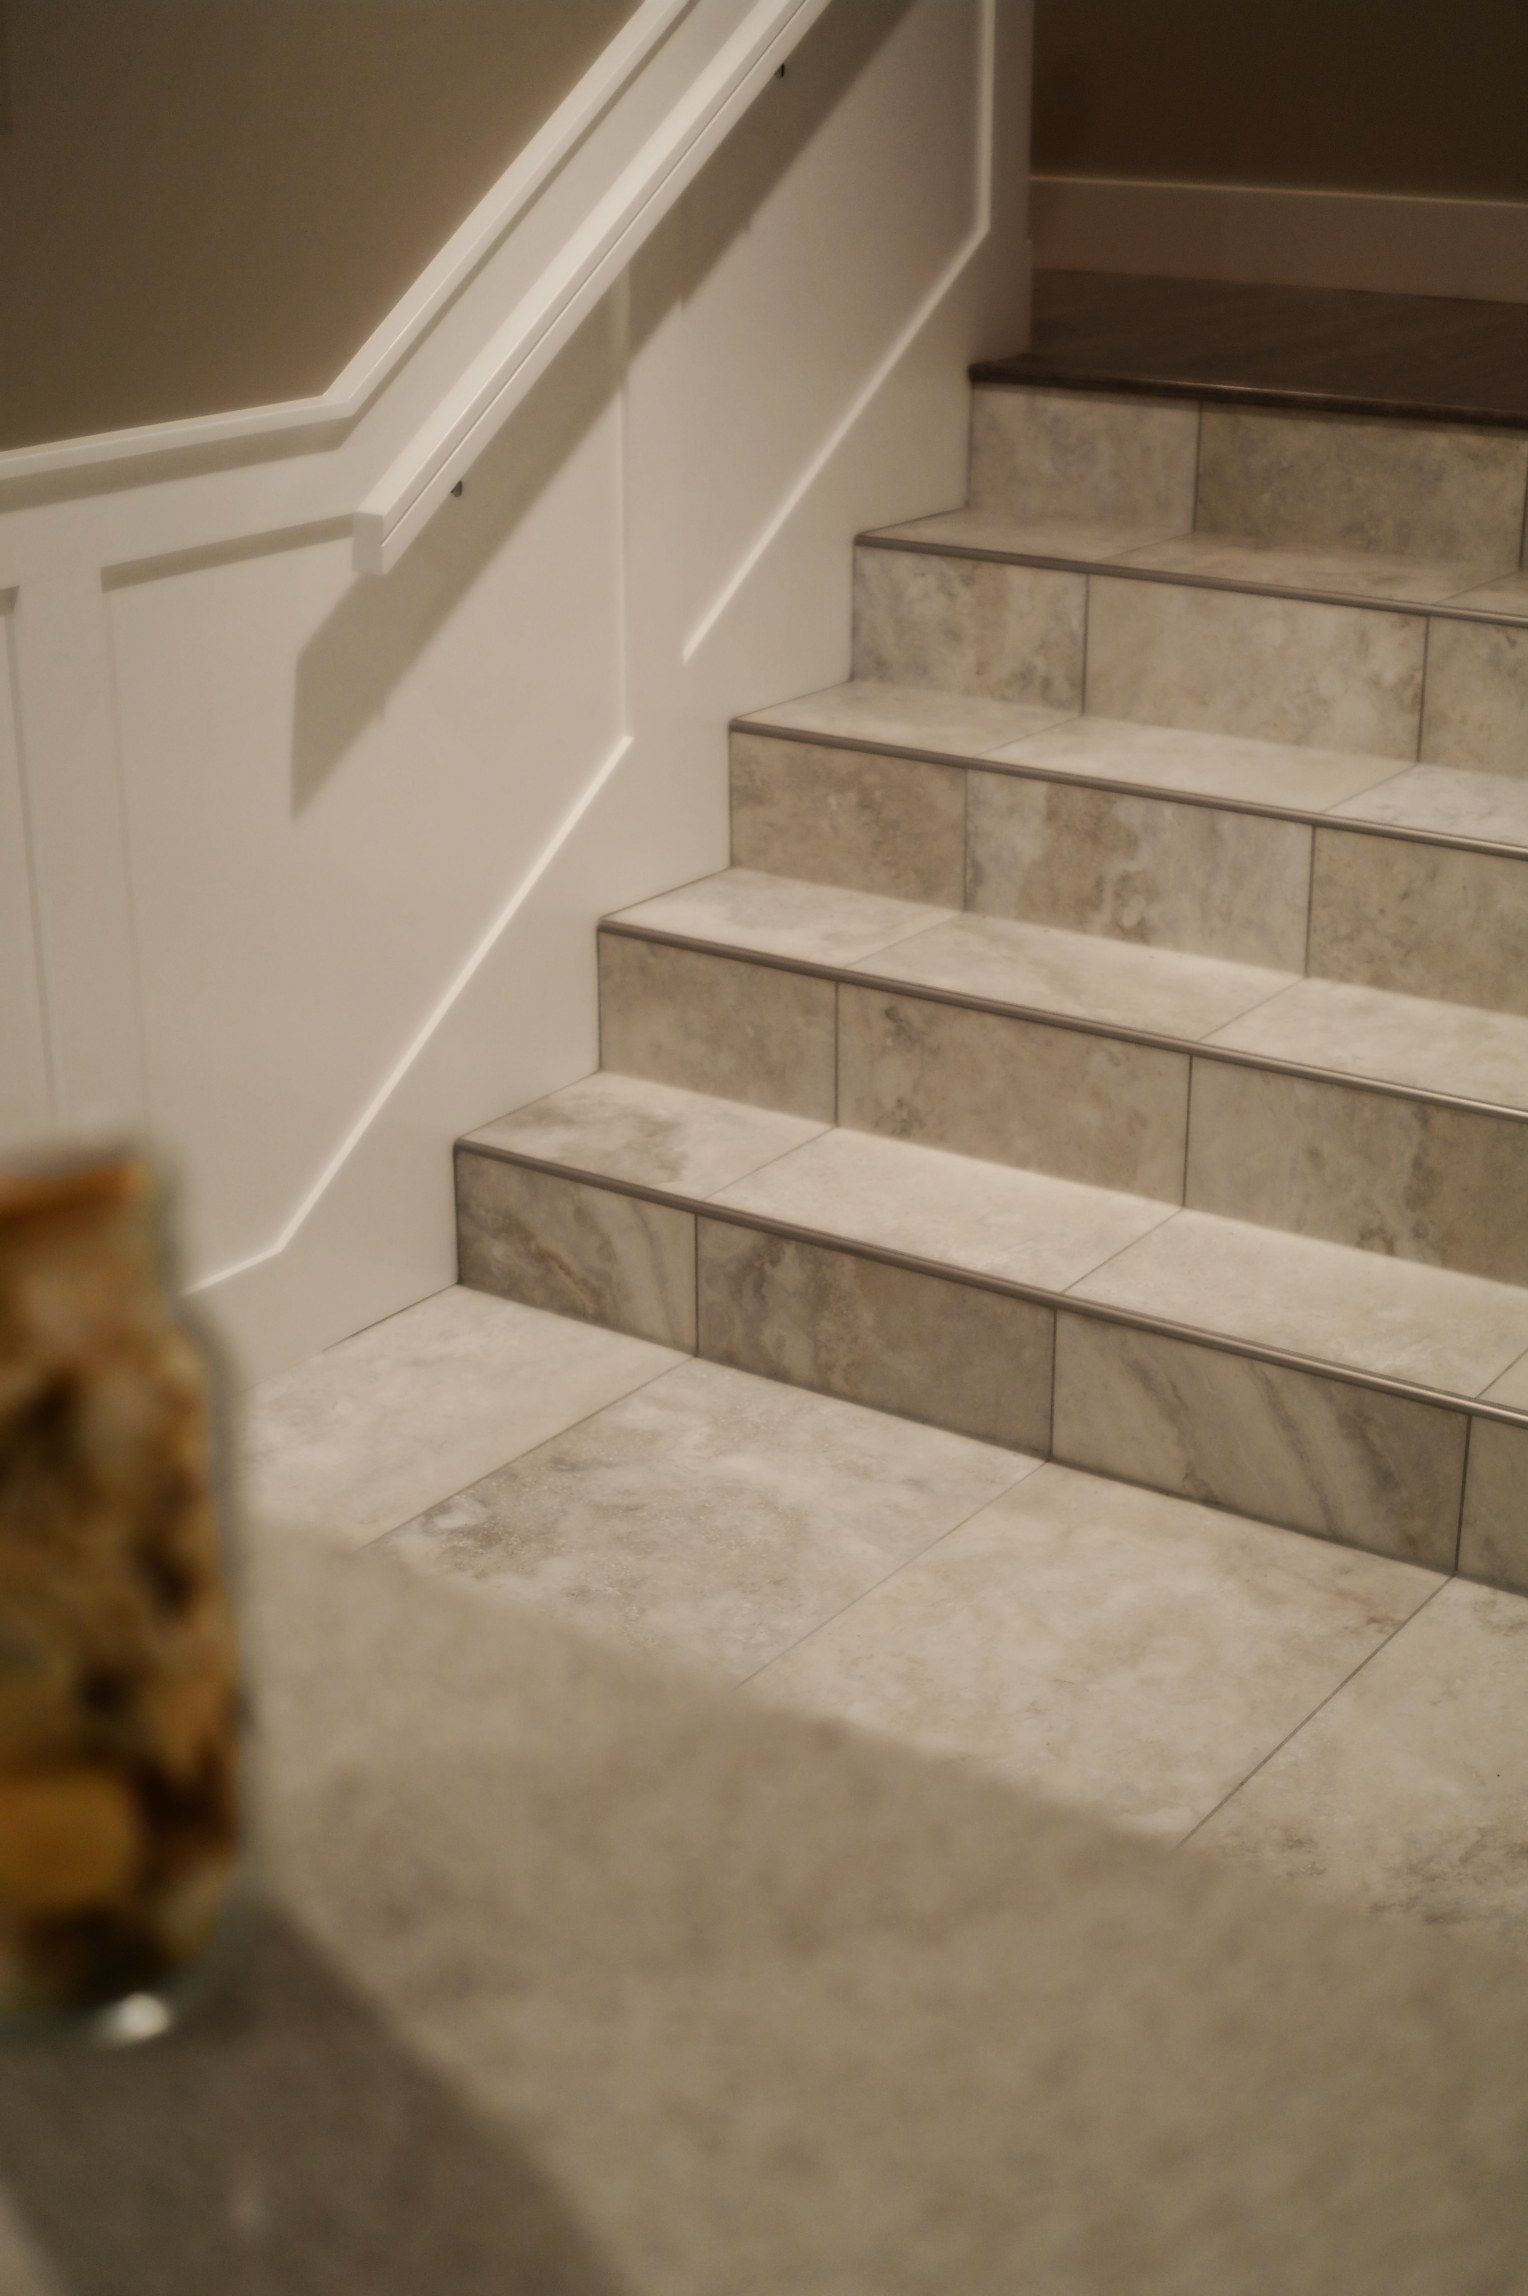 Tile On Stairs Can Be A Beautiful Durable Alternative However | Wood Look Tile For Stairs | Weathered Wood Distressed | Ceramic | Bedroom | Rocell Living Room | Porcelain